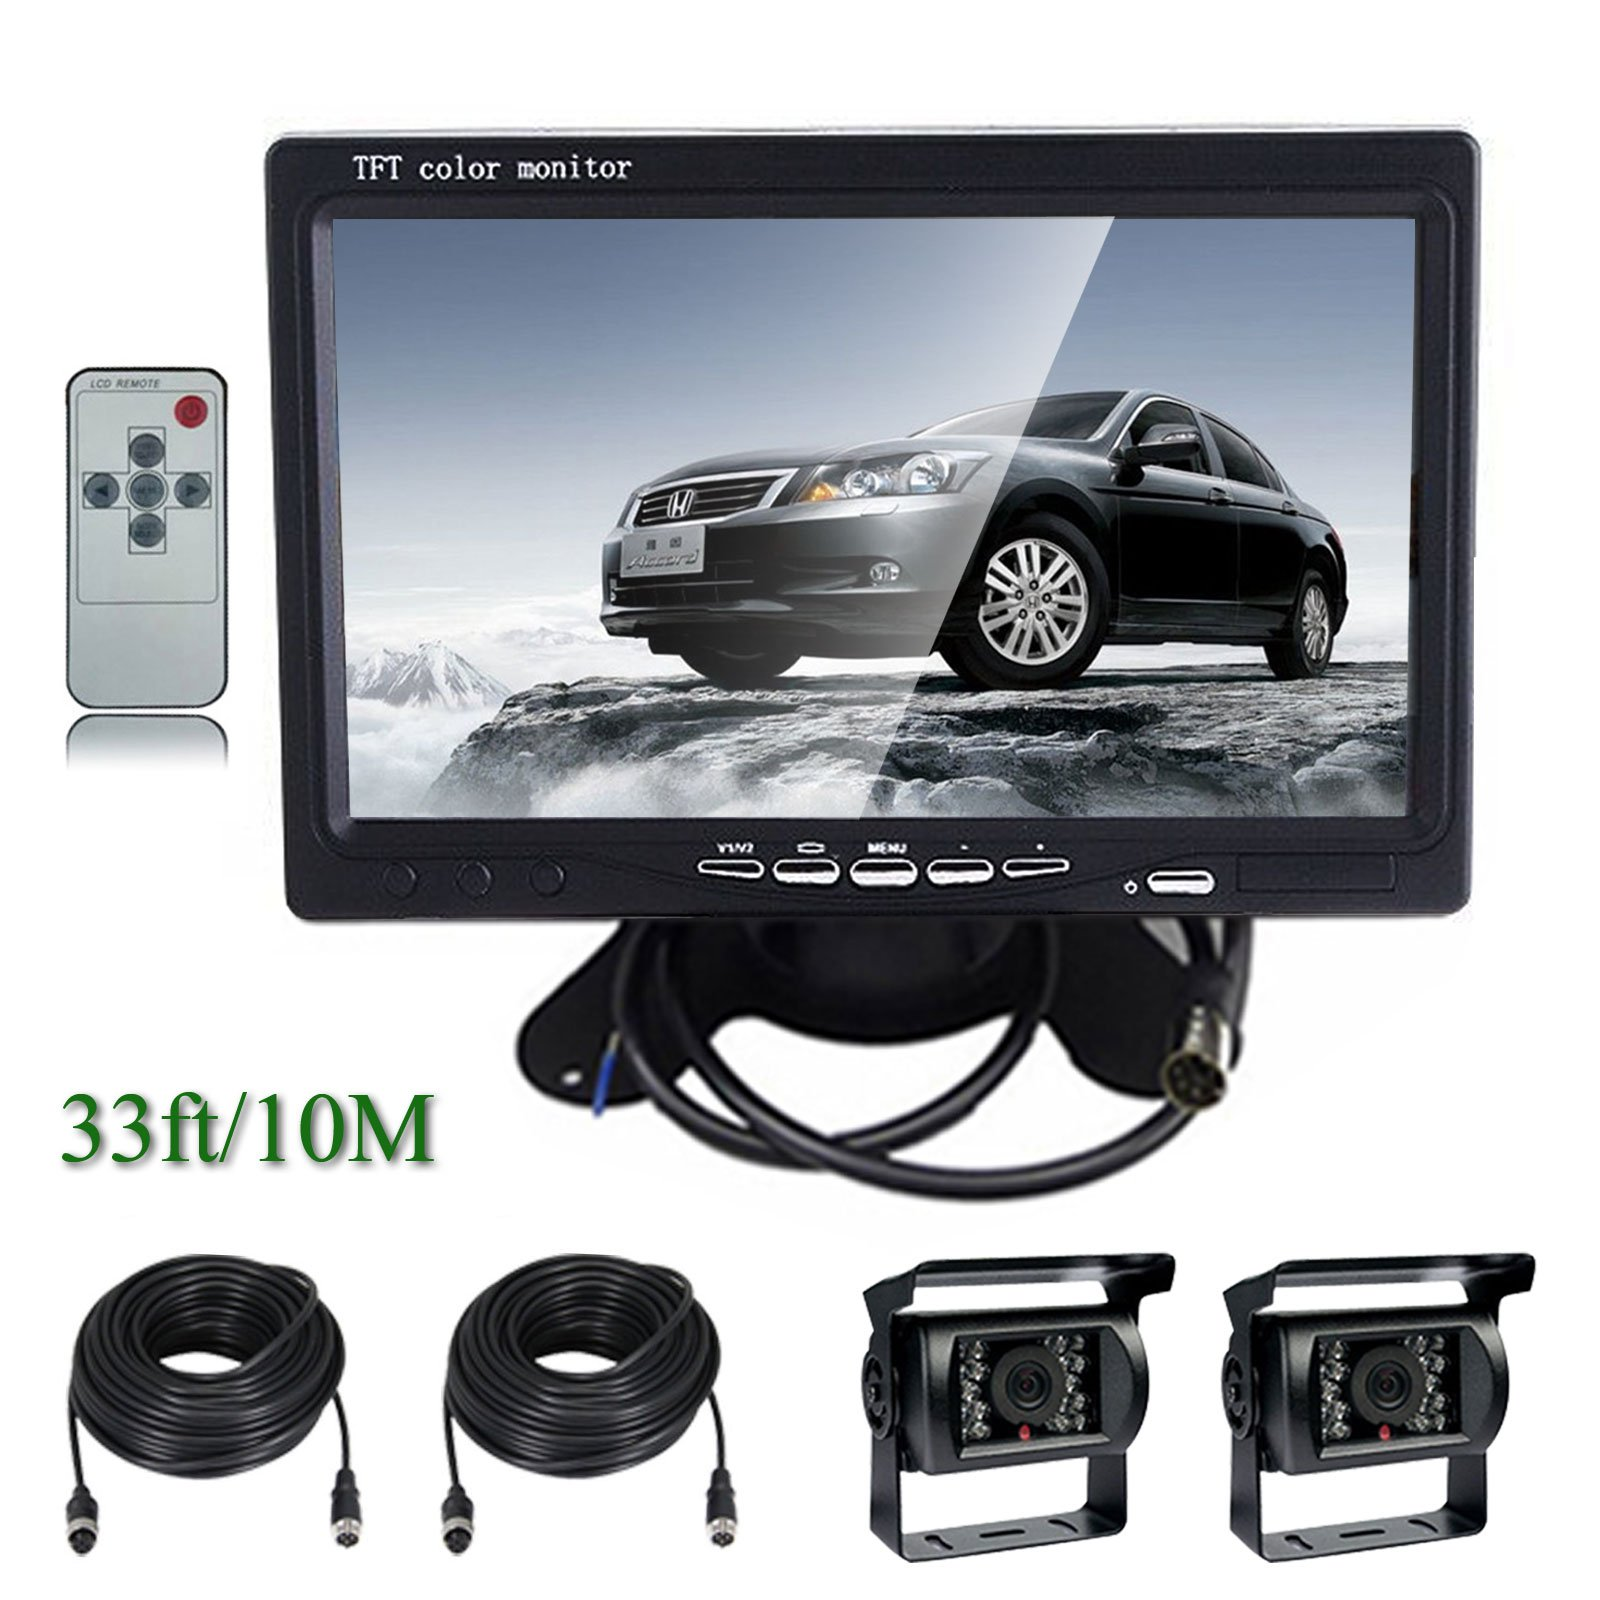 Ehotchpotch Backup Camera Kit for Bus Truck Vehicle, 7'' Color TFT LCD Widescreen16:9 Rearview Monitor, 4 Pin Connectors Waterproof CCD Camera IR Night Vision, Distance Scale Lines